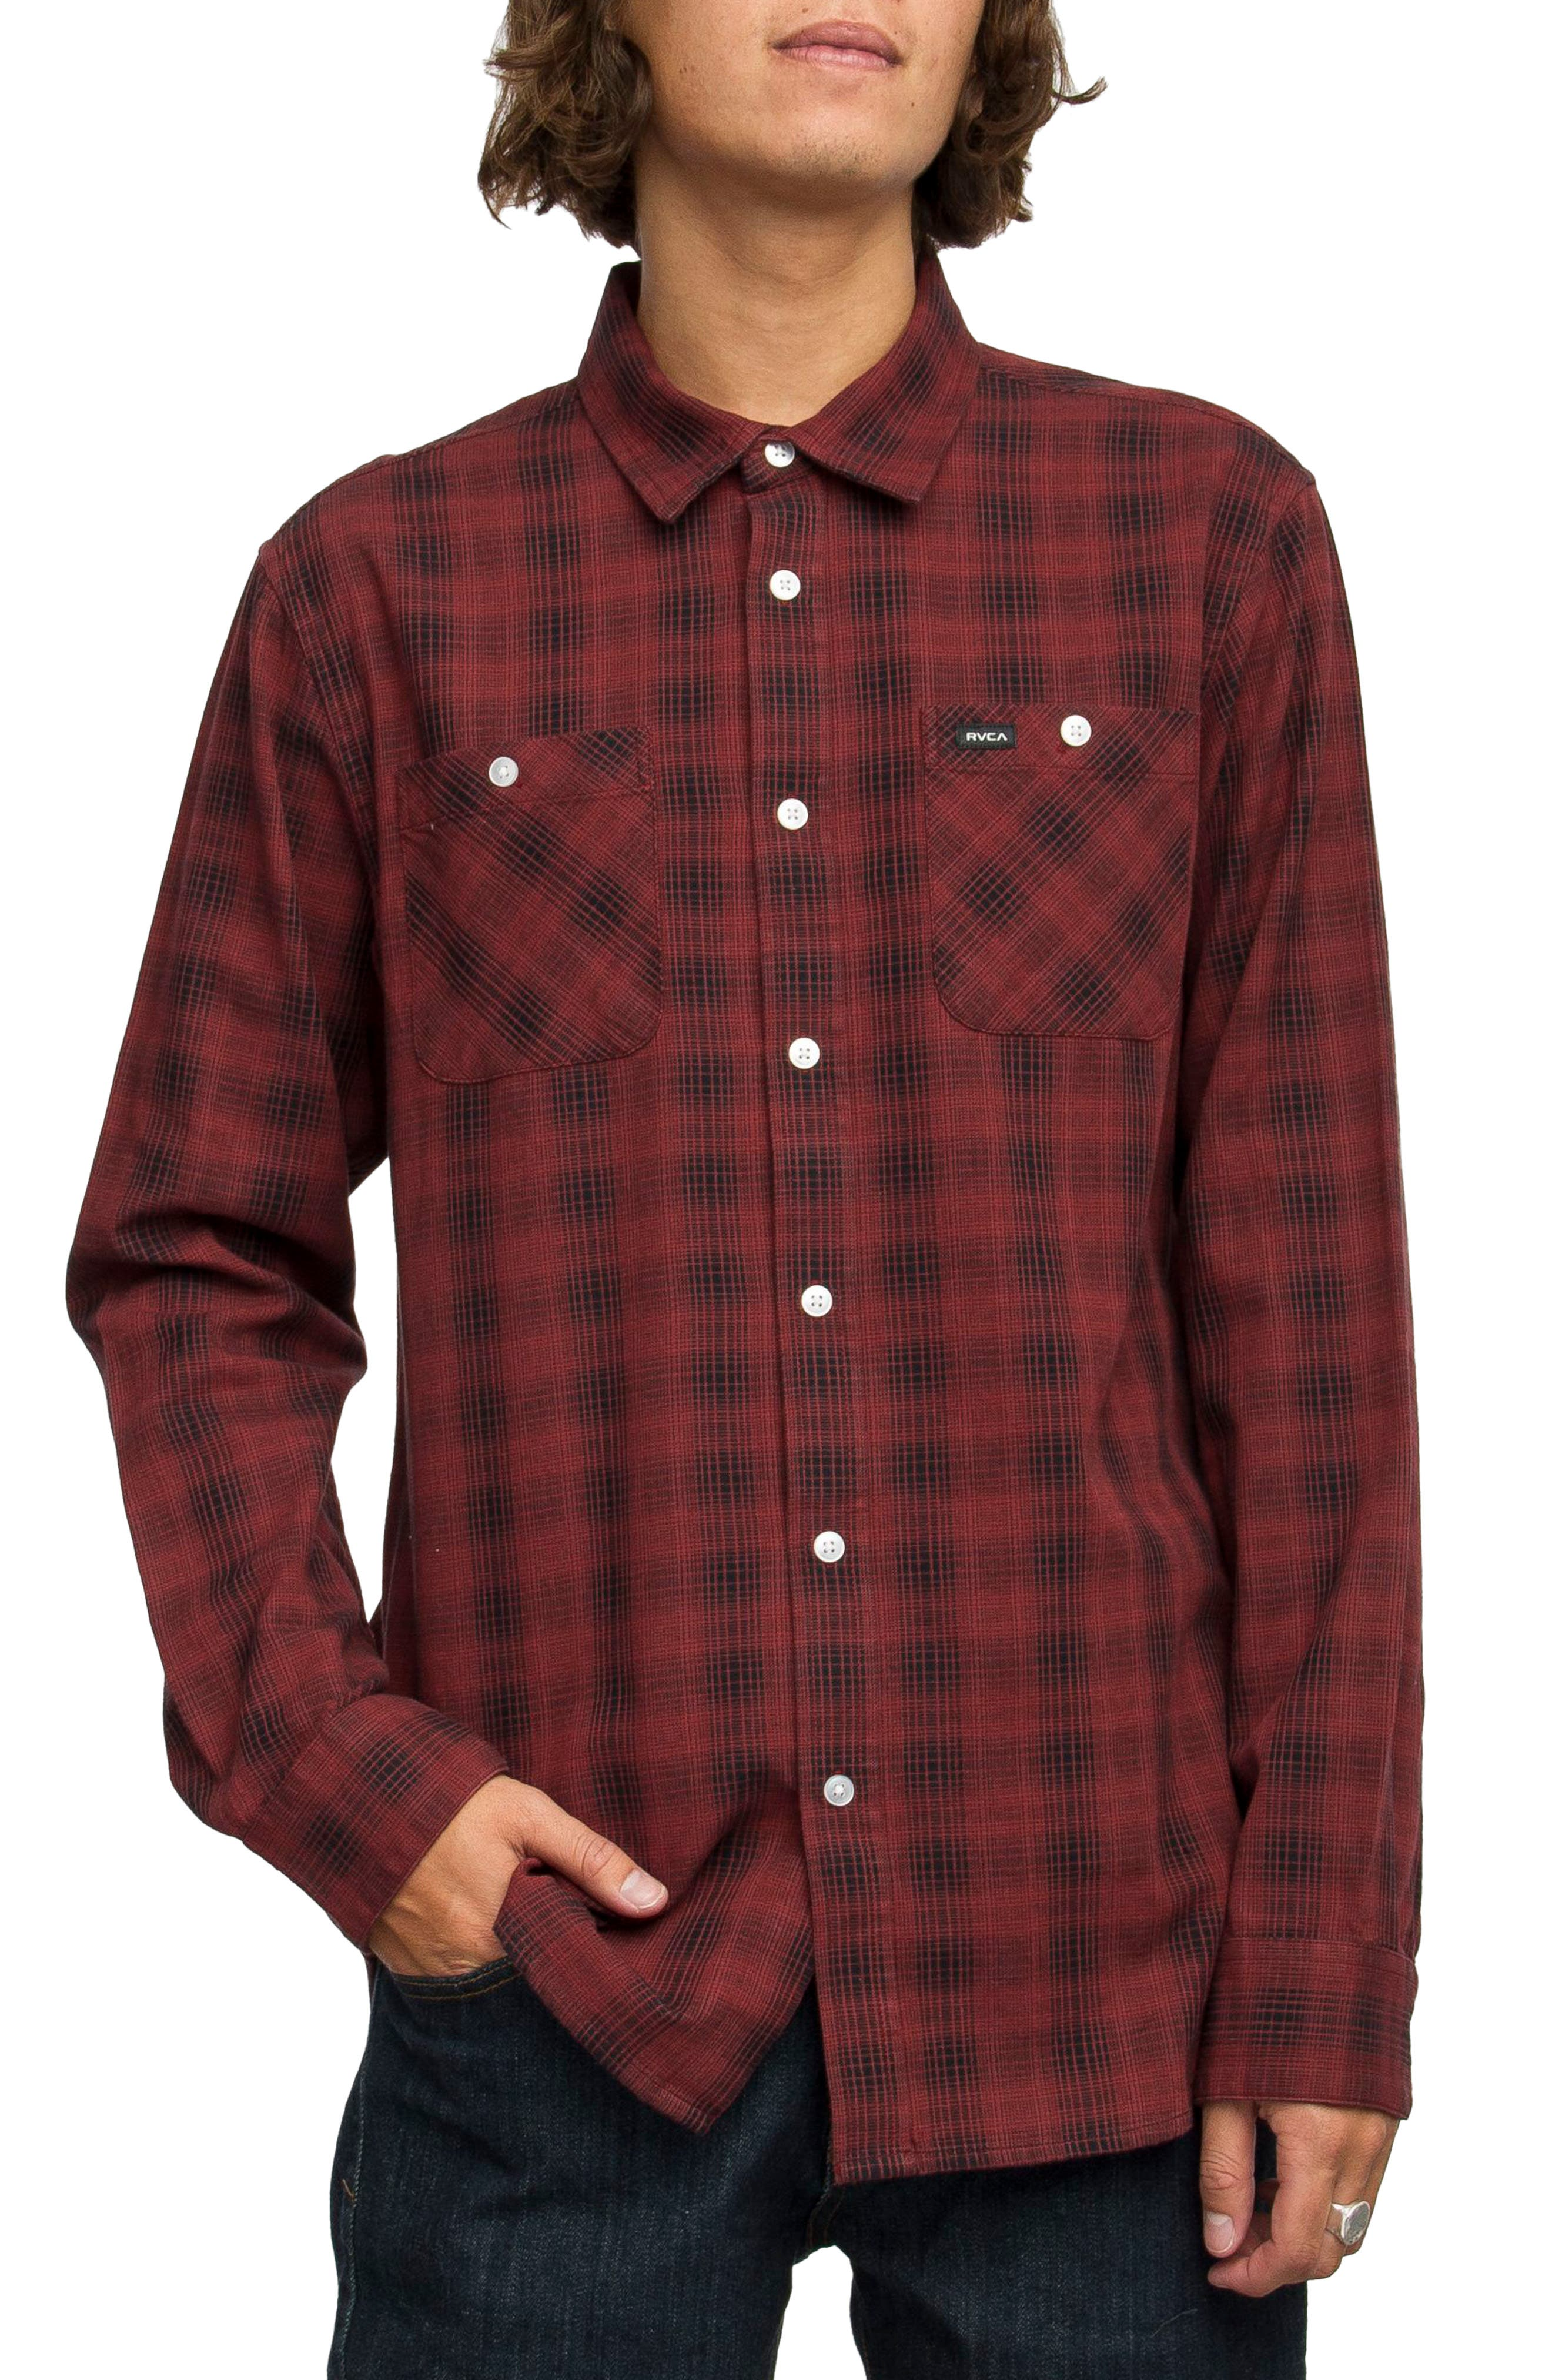 Alternate Image 1 Selected - RVCA Trample Plaid Flannel Shirt